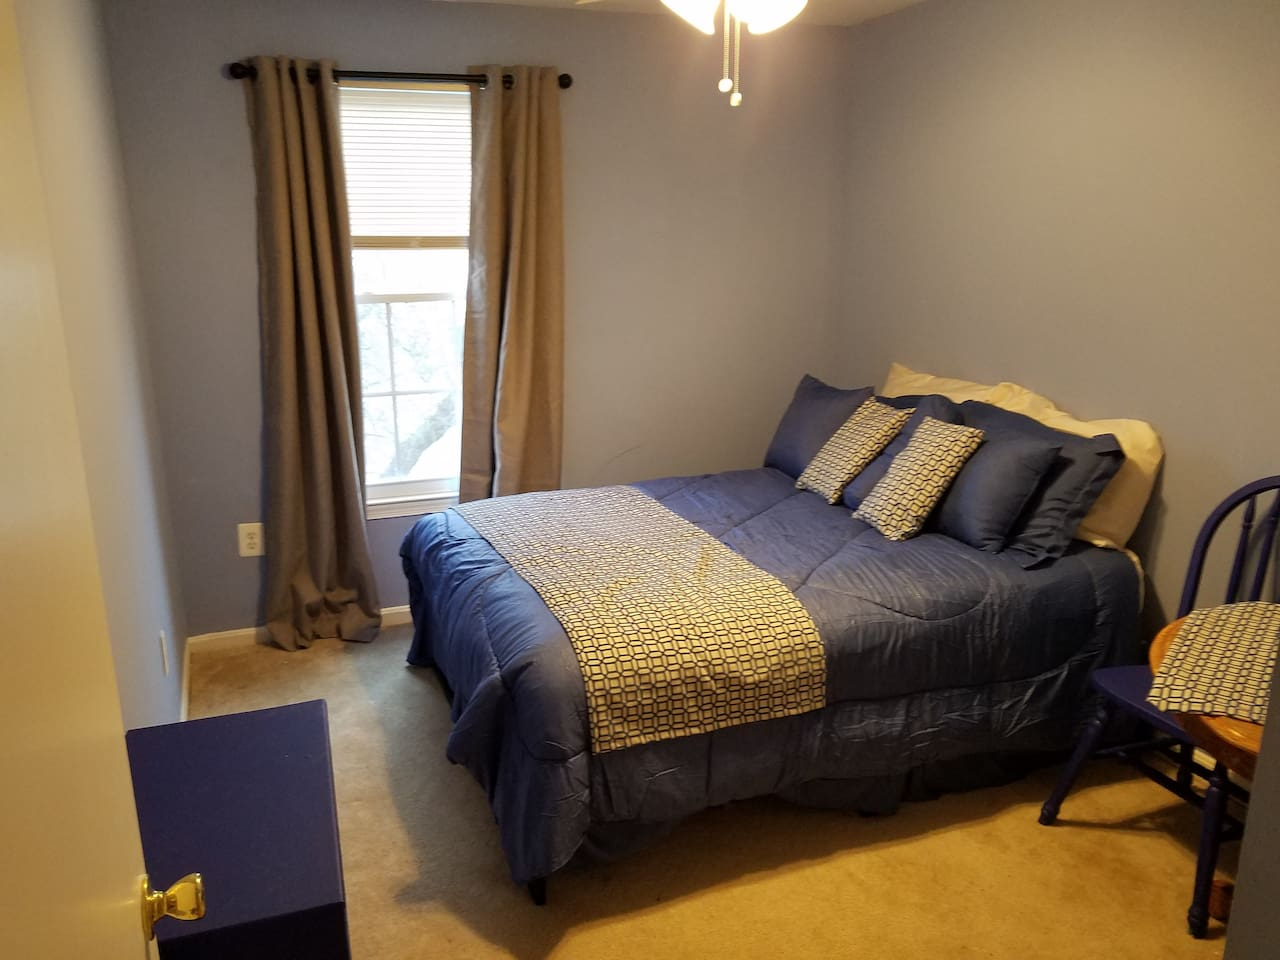 Full sized bed, quiet upstairs bedroom